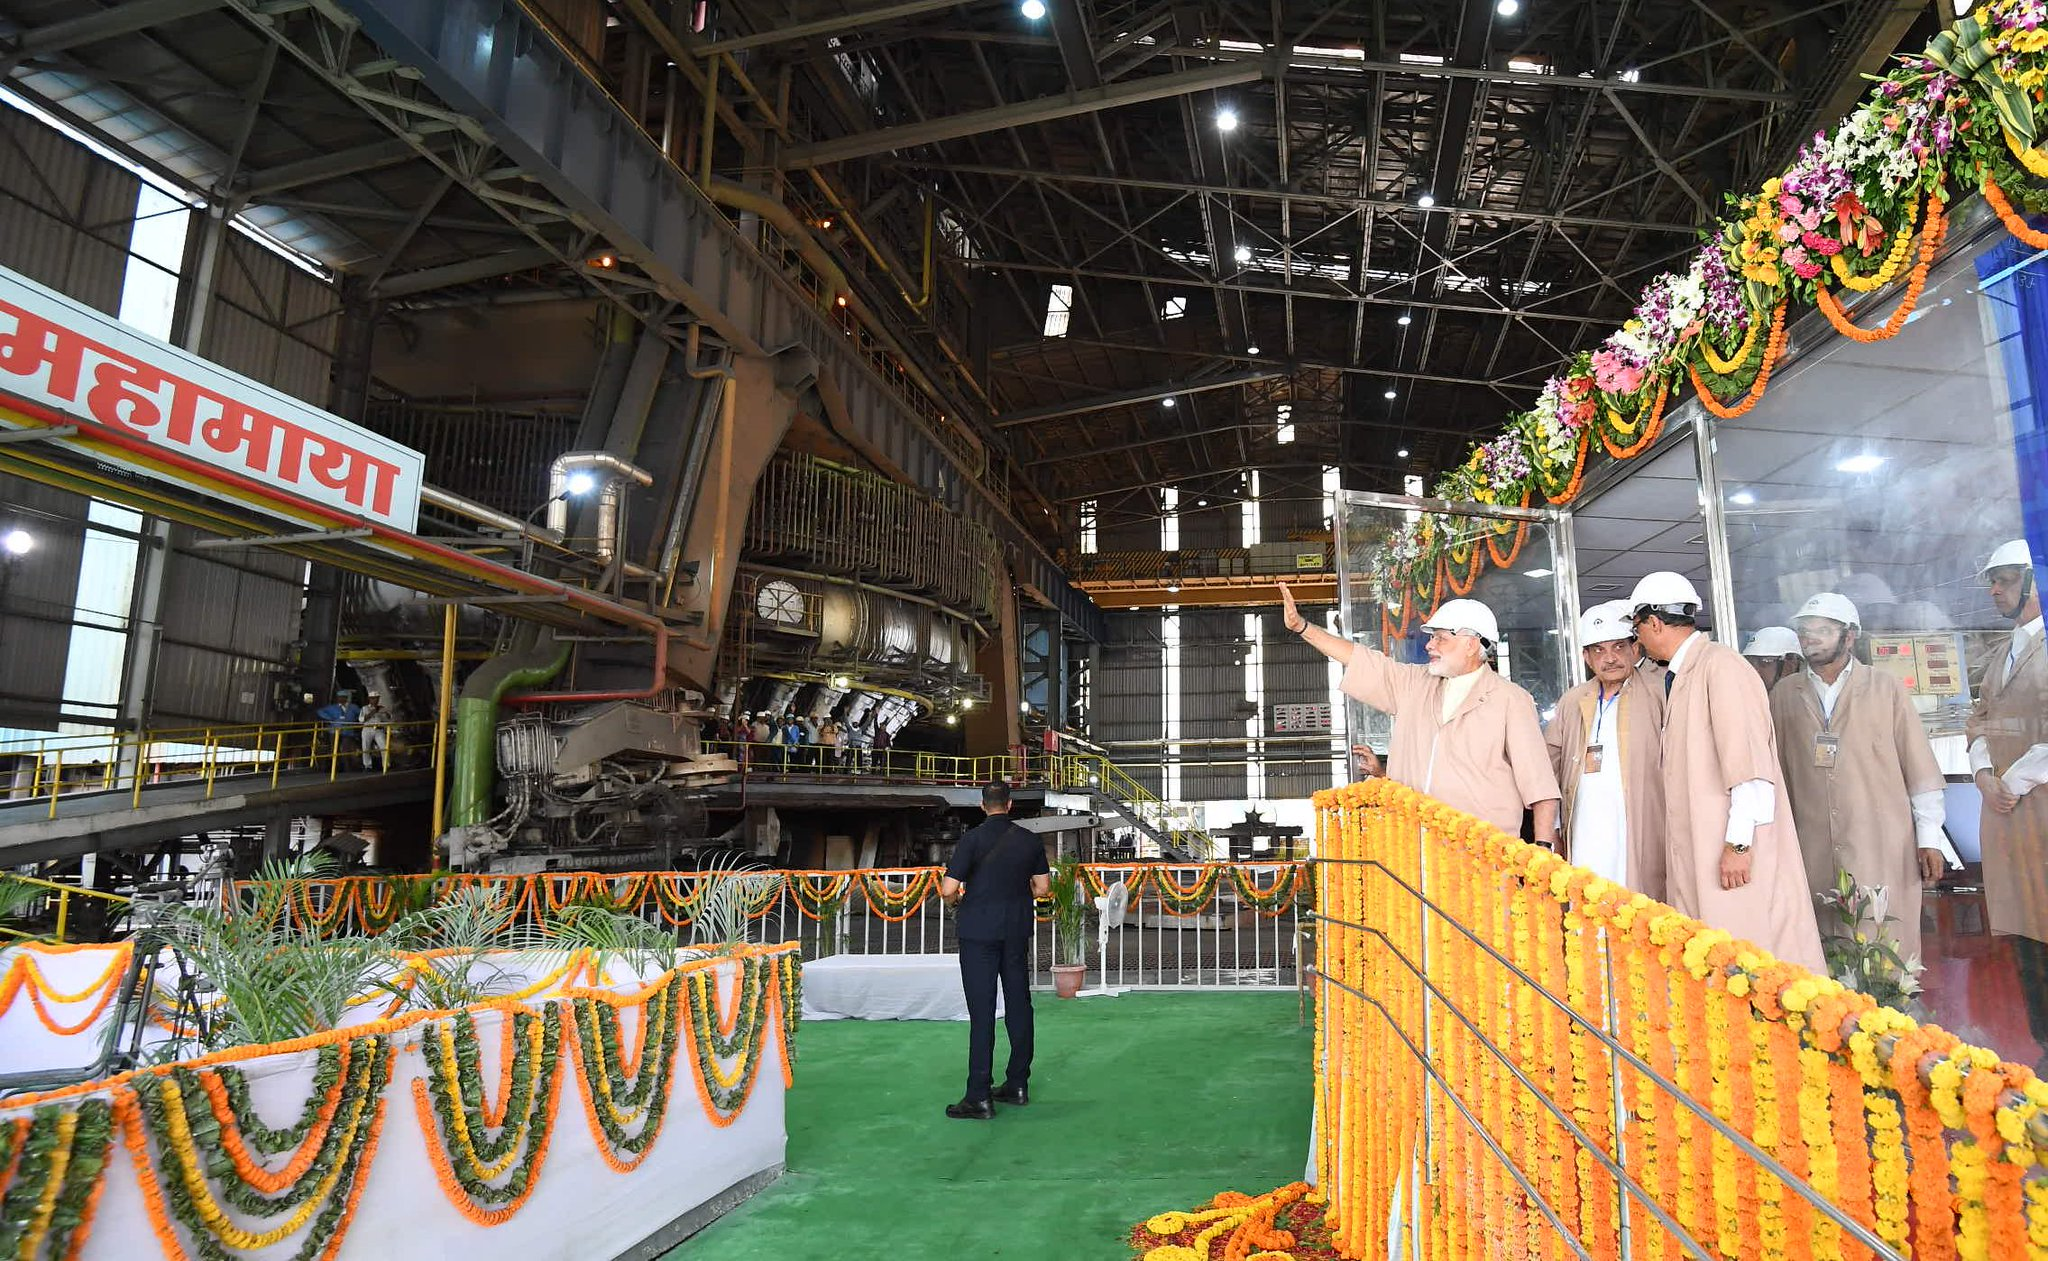 Visited the Bhilai Steel Plant earlier today. https://t.co/Y4tA8gHuXK